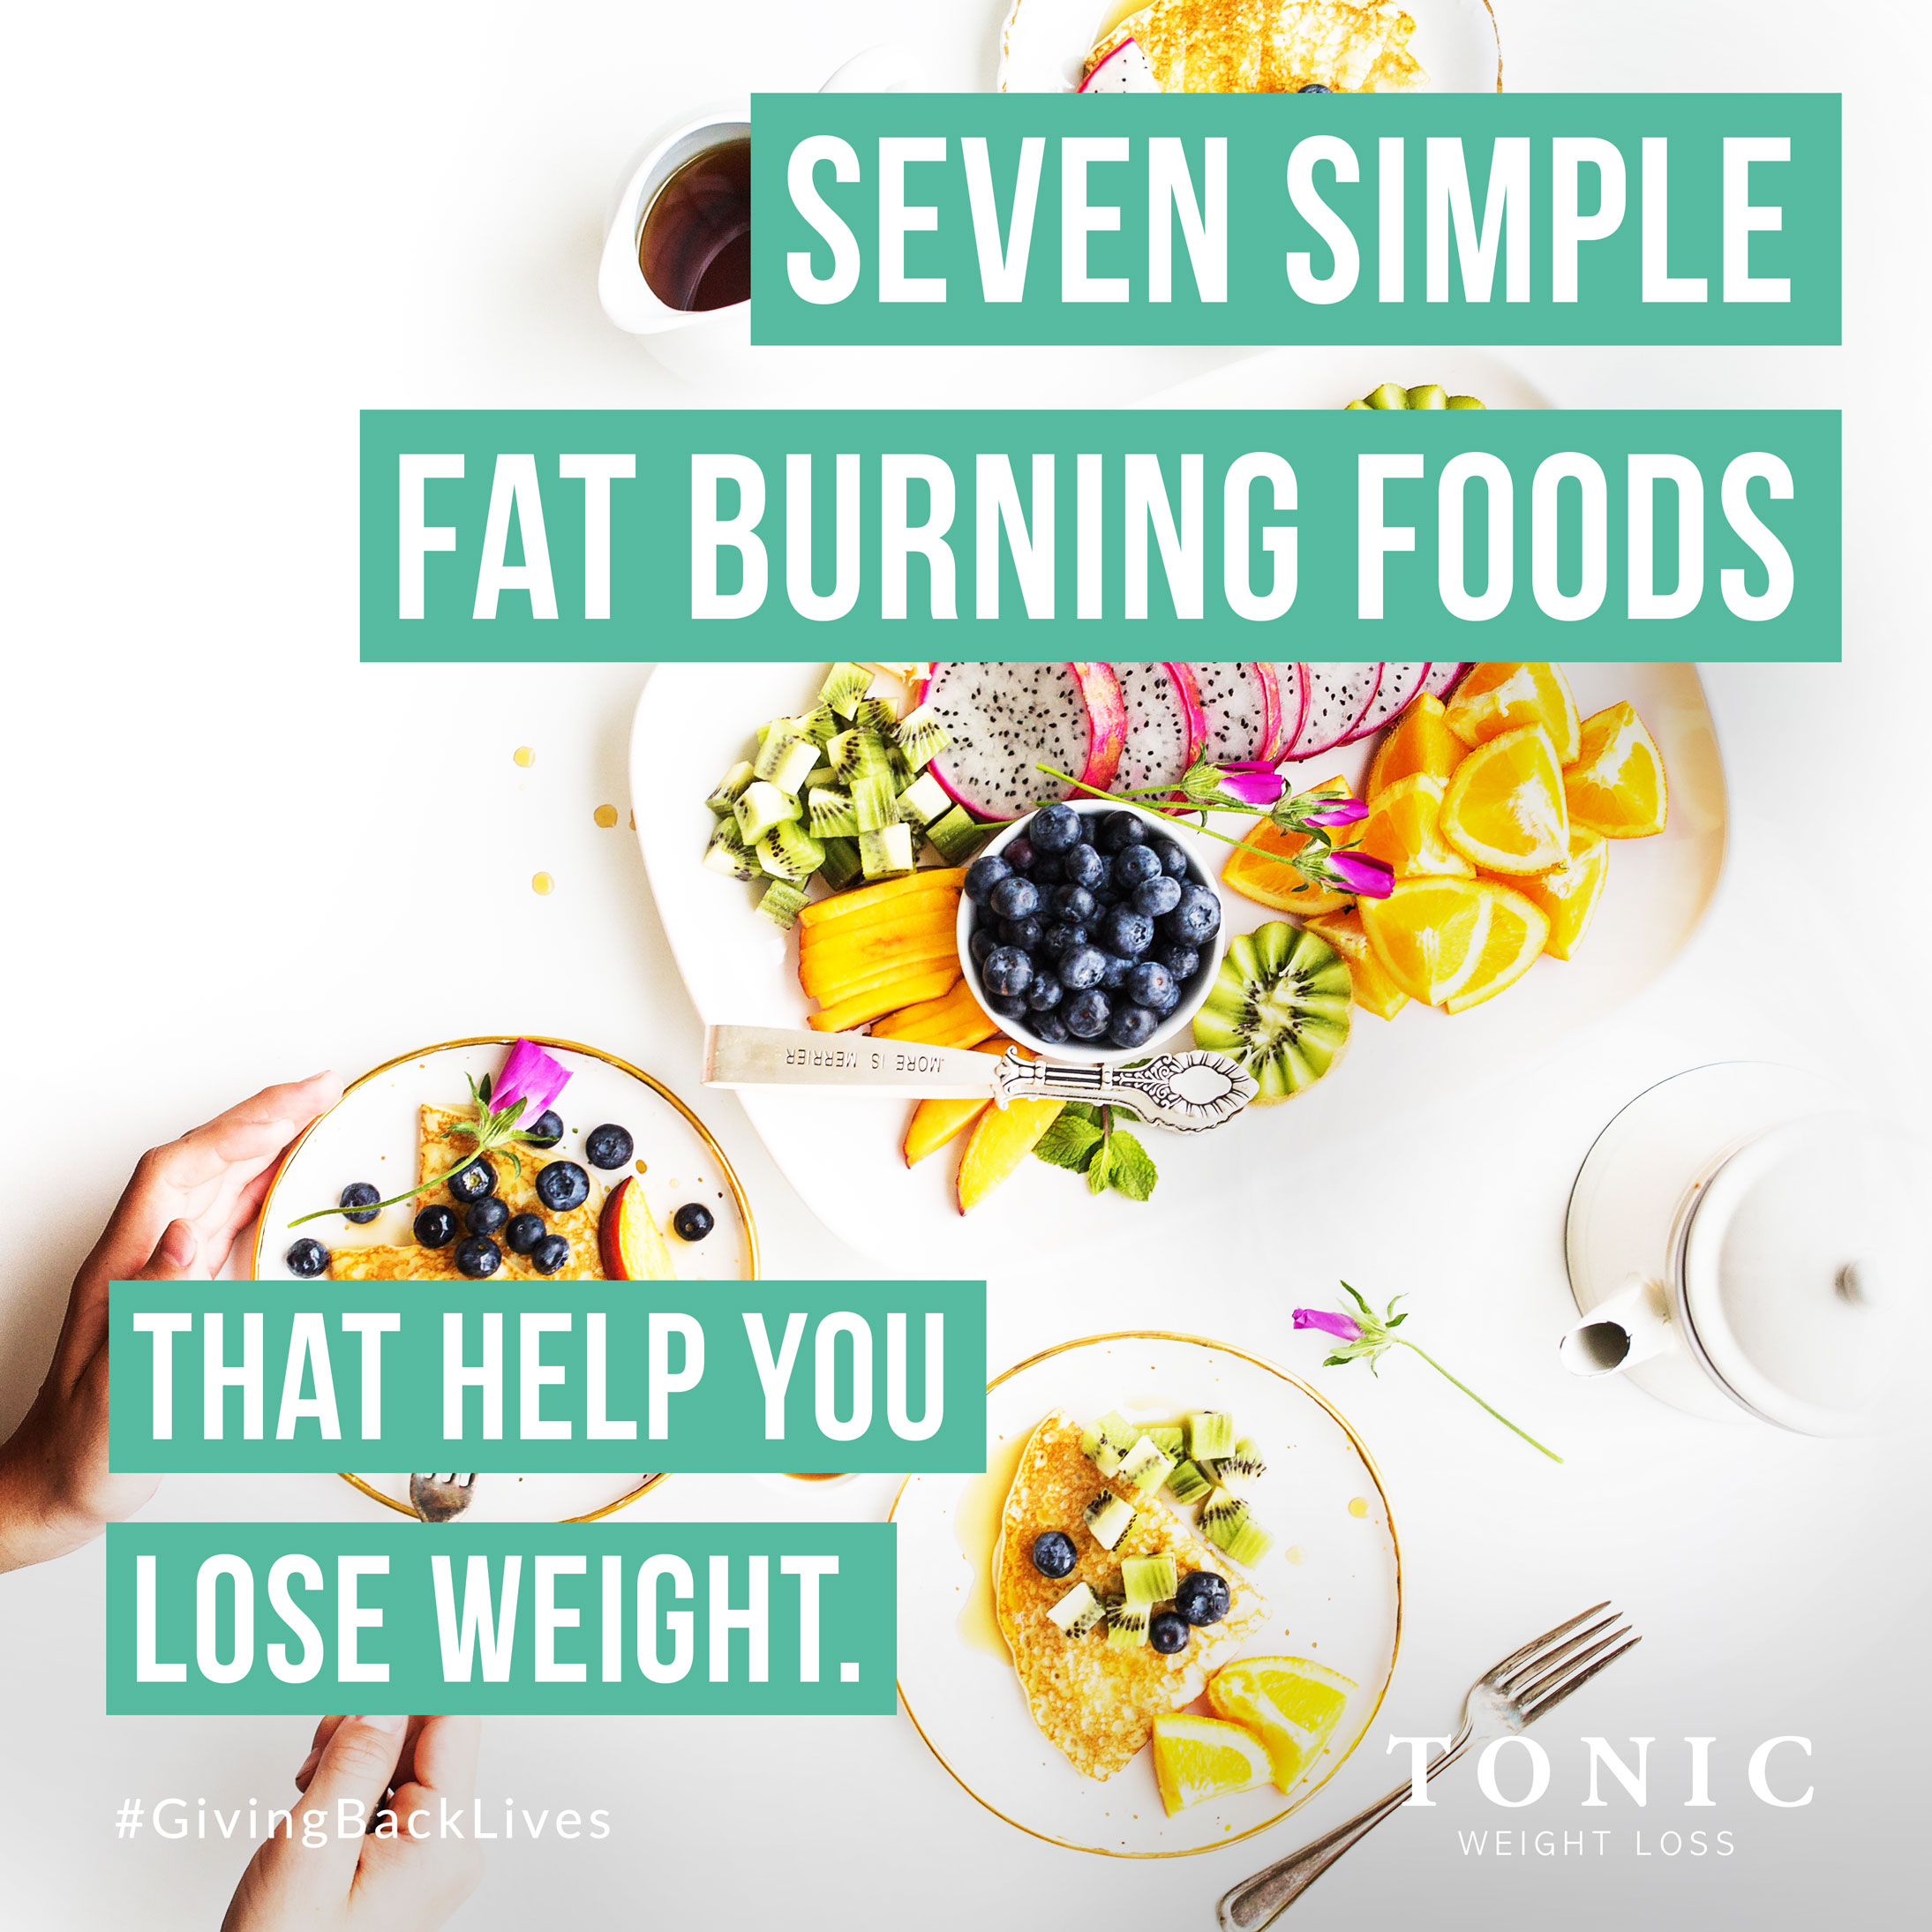 7 fat burning foods that help you lose weight. - tonic weight loss